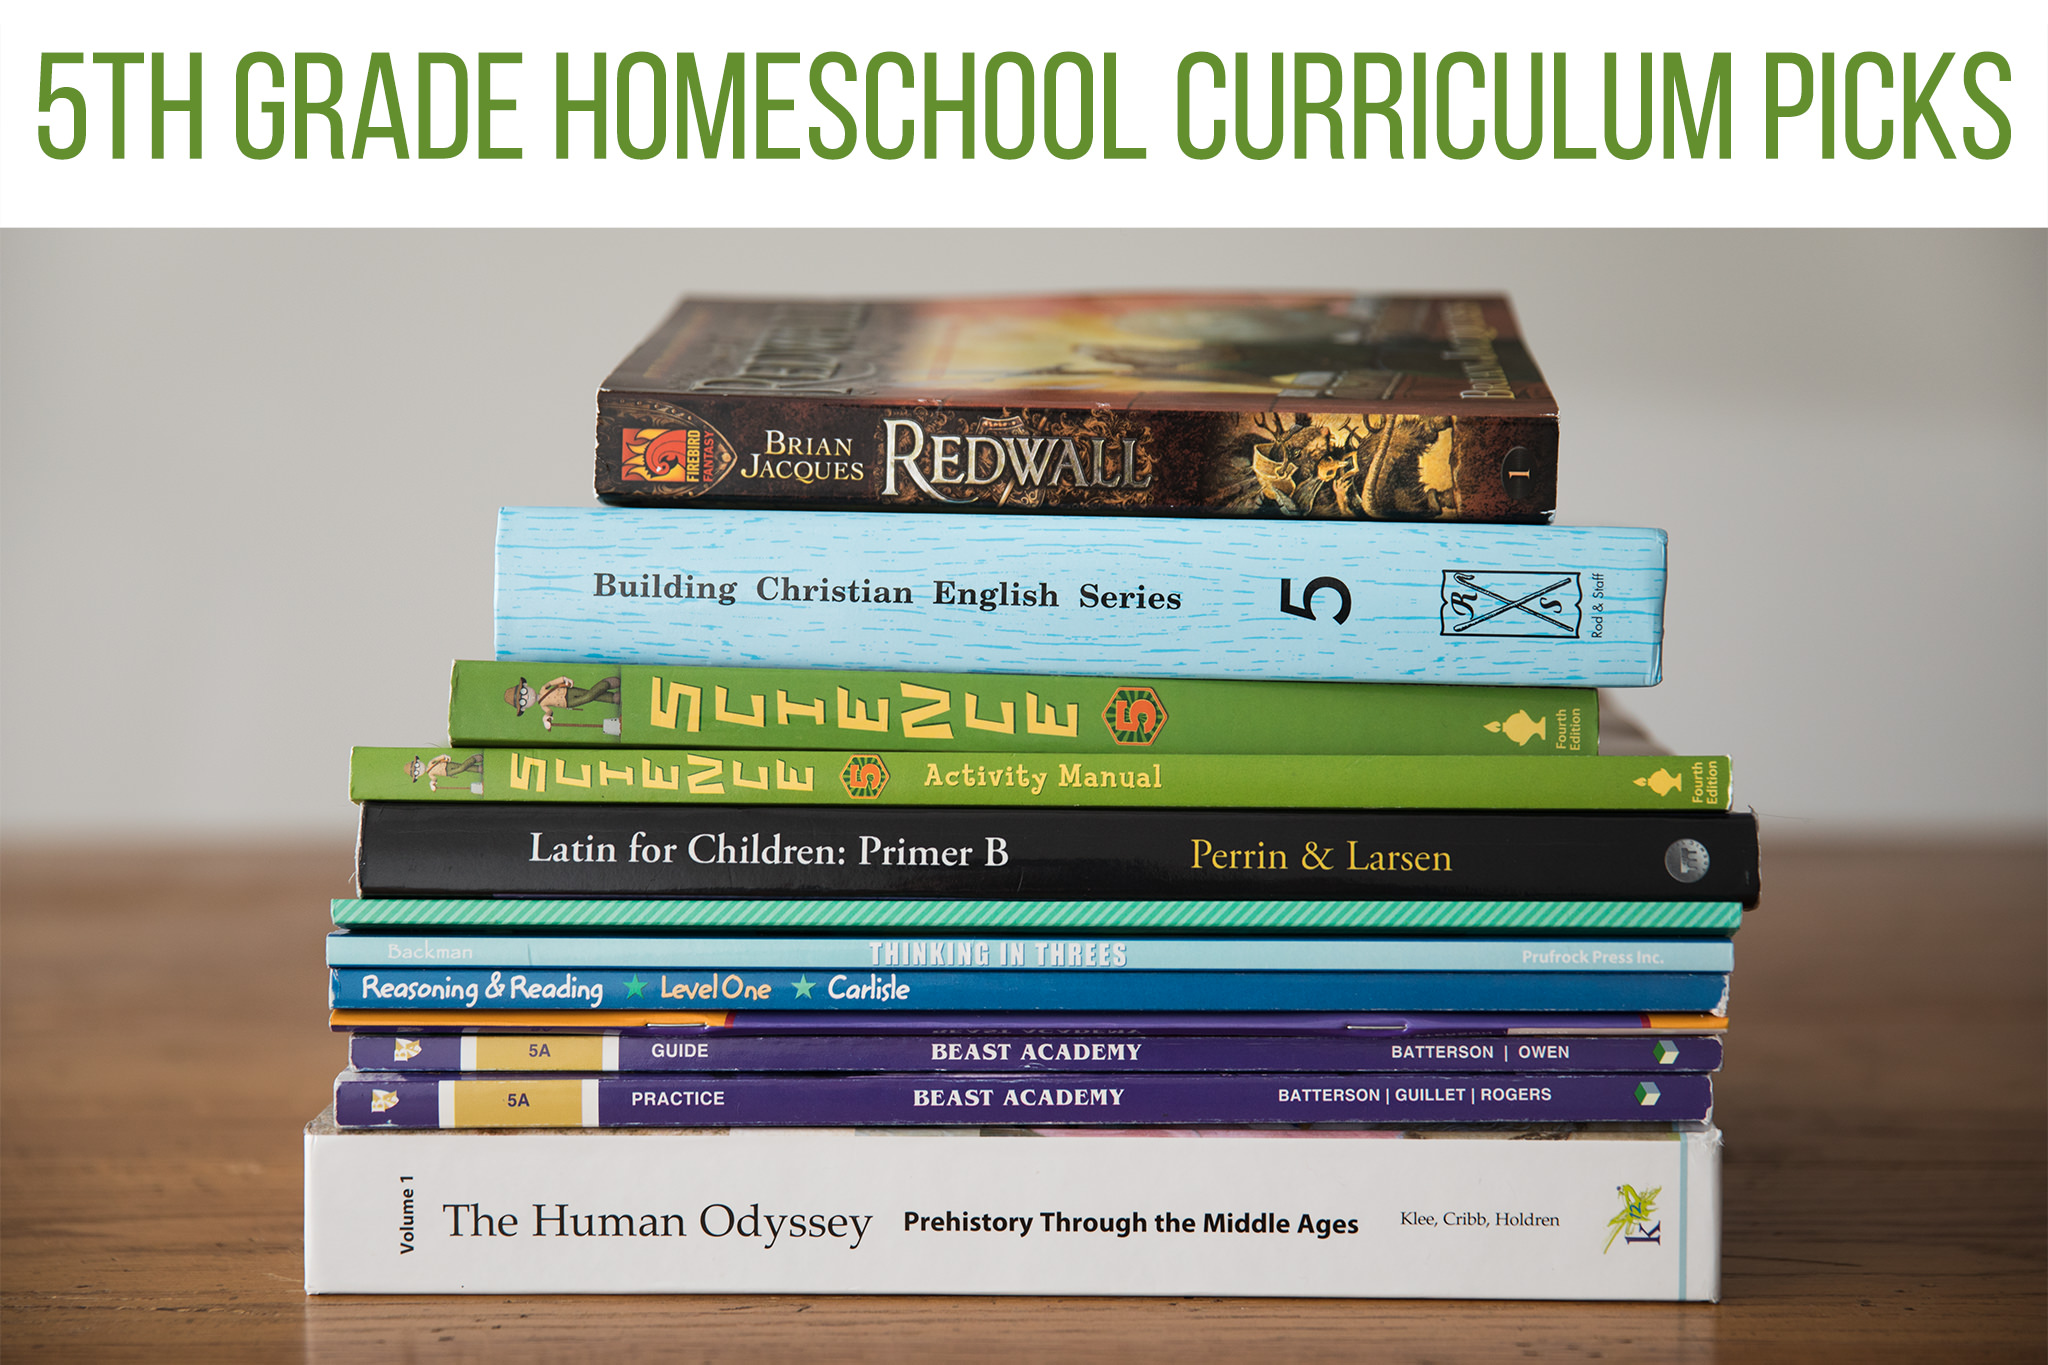 Our 5th Grade Homeschool Curriculum